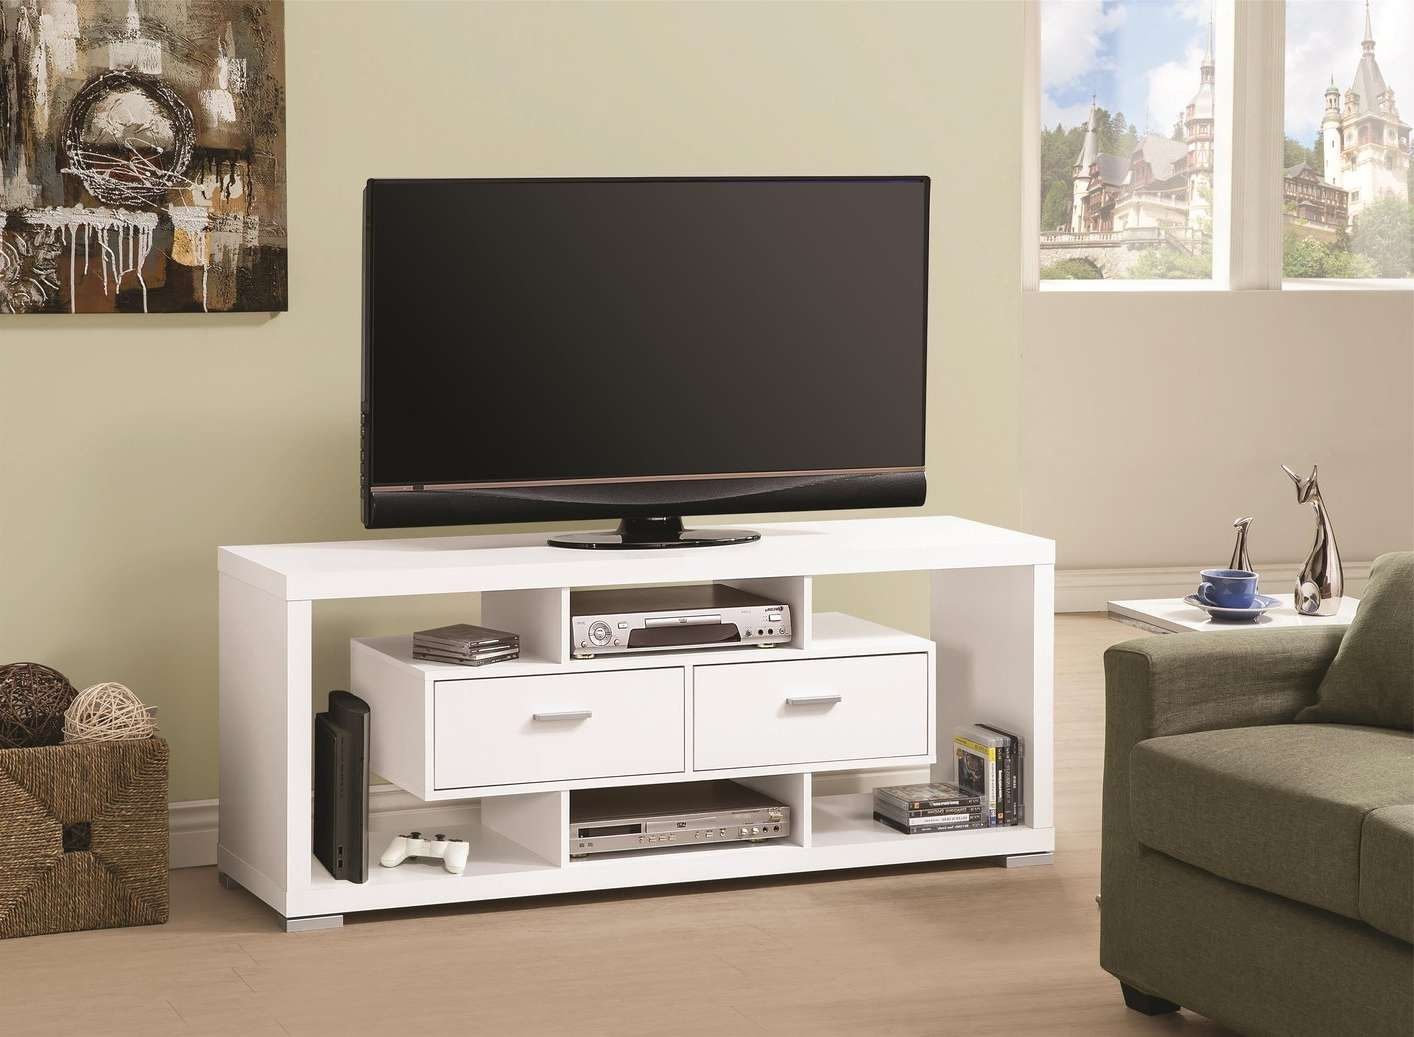 White Wood Tv Stand – Steal A Sofa Furniture Outlet Los Angeles Ca Intended For White Wooden Tv Stands (View 17 of 20)